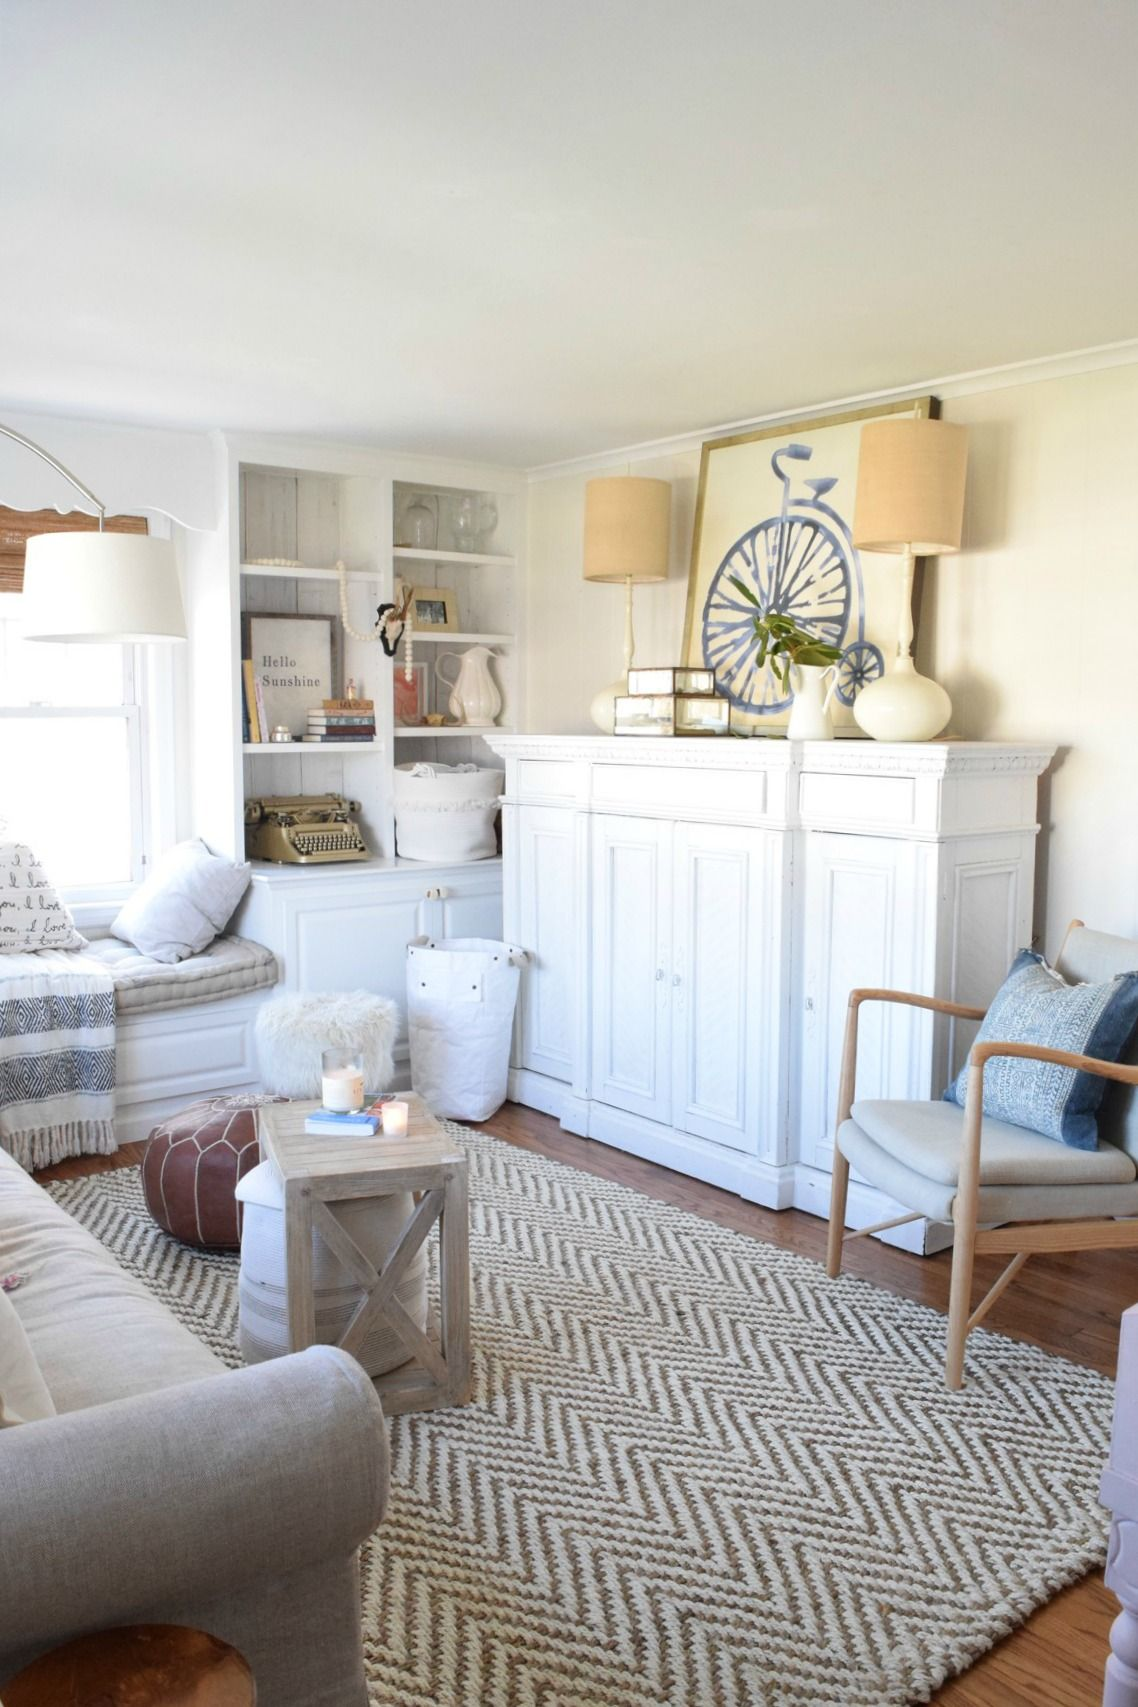 New Sofa in our Eclectic Beach Style Cape Front Room | Pinterest ...